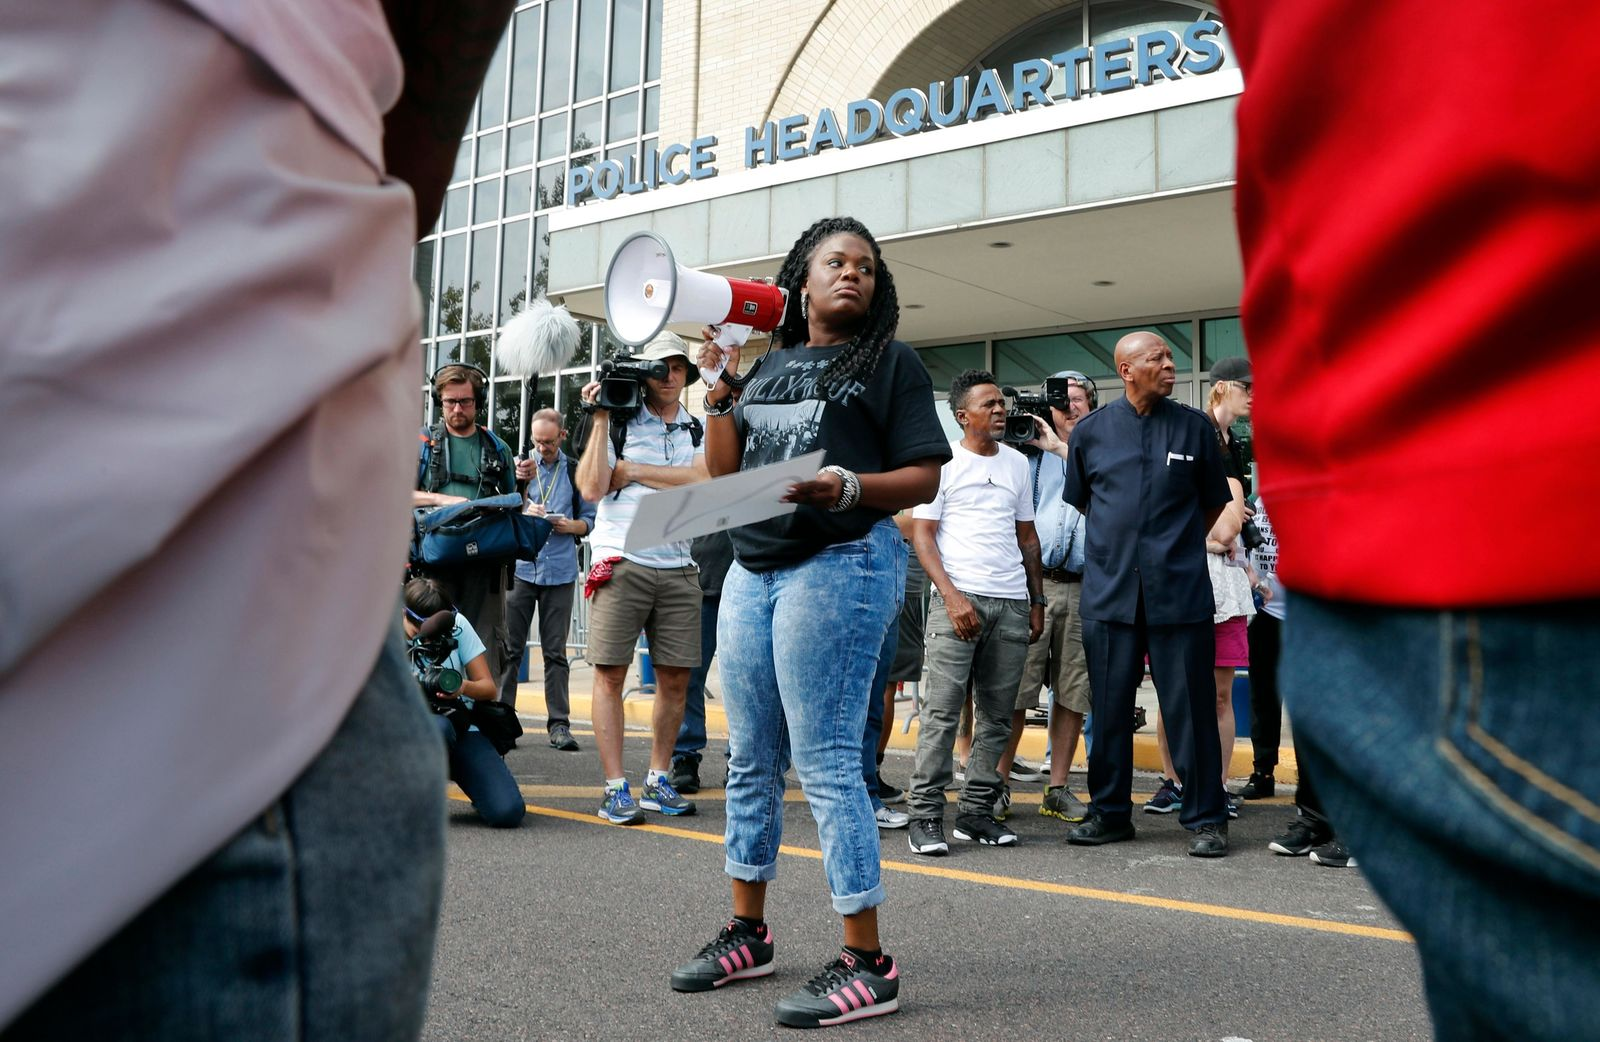 FILE - In this Sept. 17, 2017 file photo, Cori Bush speaks on a bullhorn to protesters outside the St. Louis Police Department headquarters in St. Louis. (AP Photo/Jeff Roberson, File)